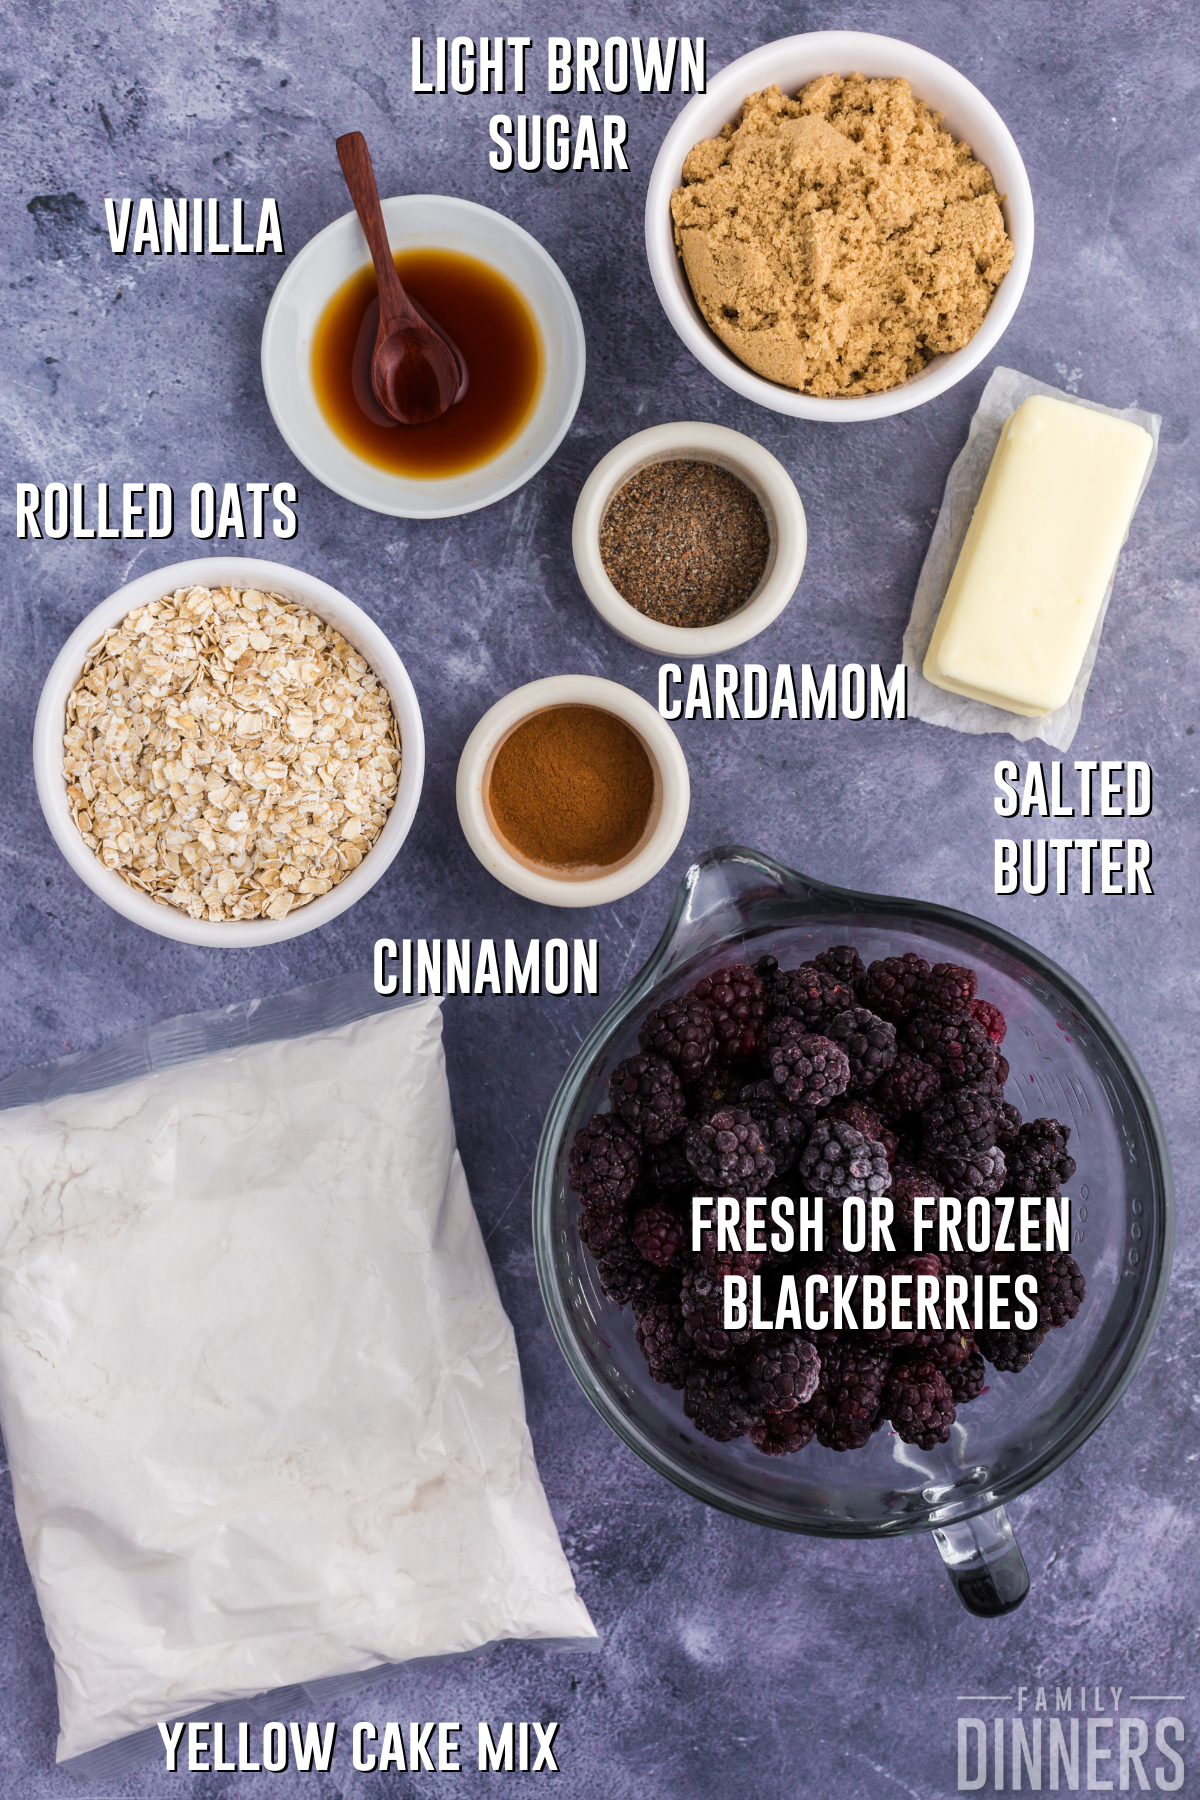 dark gray countertop with bowls of ingredients for blackberry dump cake